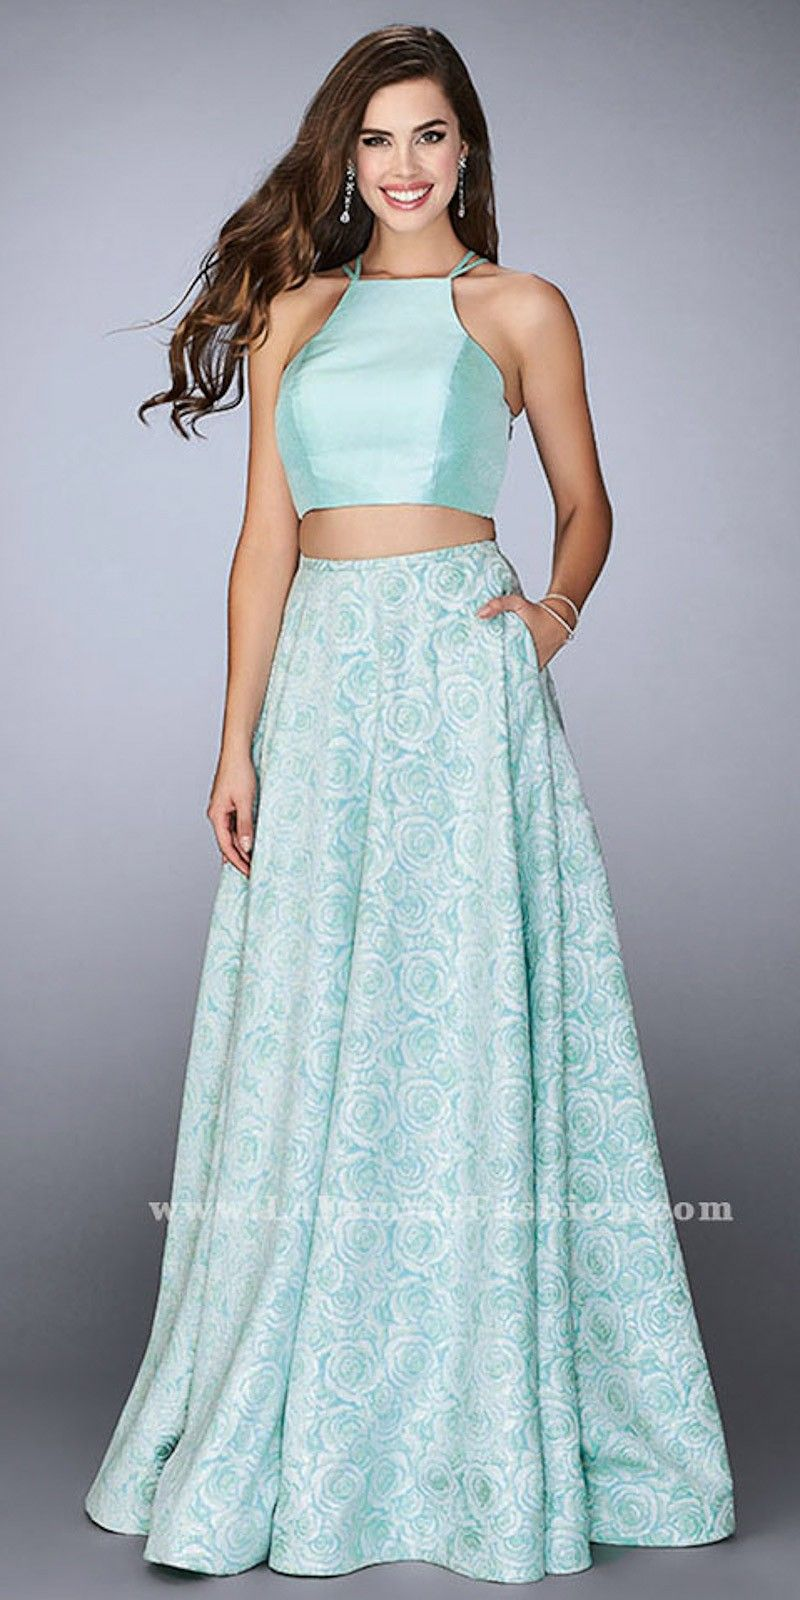 Jacquard Floral Print Two Piece Strappy Open Back Prom Dress by La ...